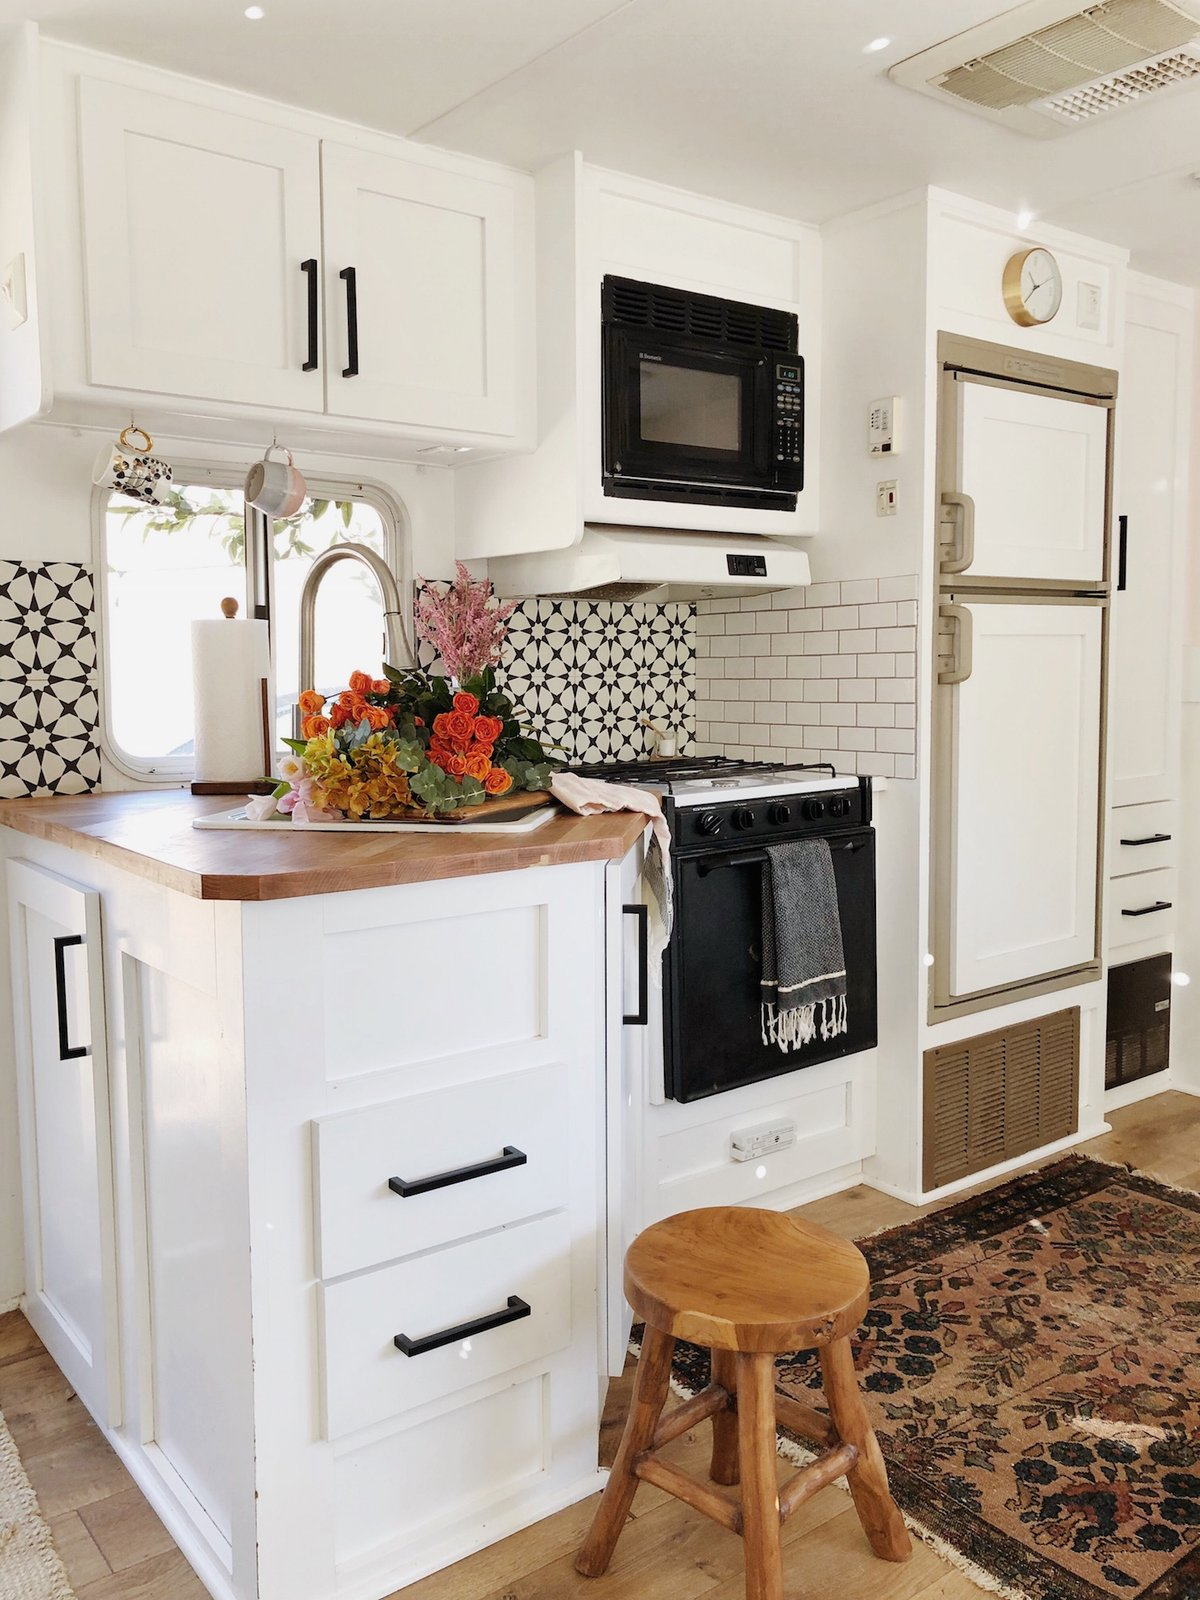 Photo 8 of 11 in a couple spend 3k to turn an old rv into a cozy the compact kitchen features a ceramic tile backsplash tagged kitchen microwave wood dailygadgetfo Choice Image